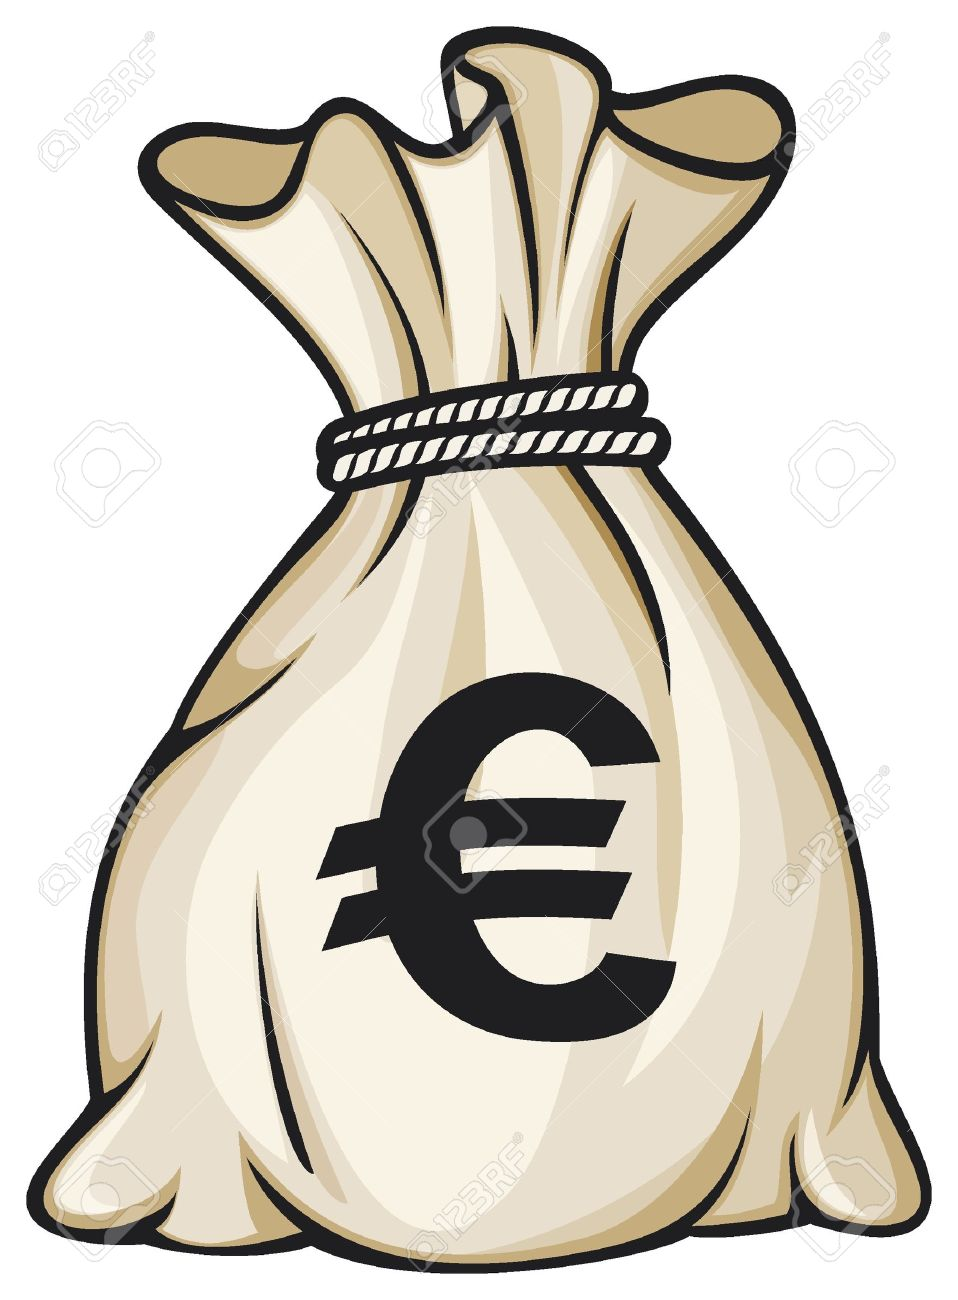 Money Bag With Euro Sign Illustration Royalty Free Cliparts Vectors